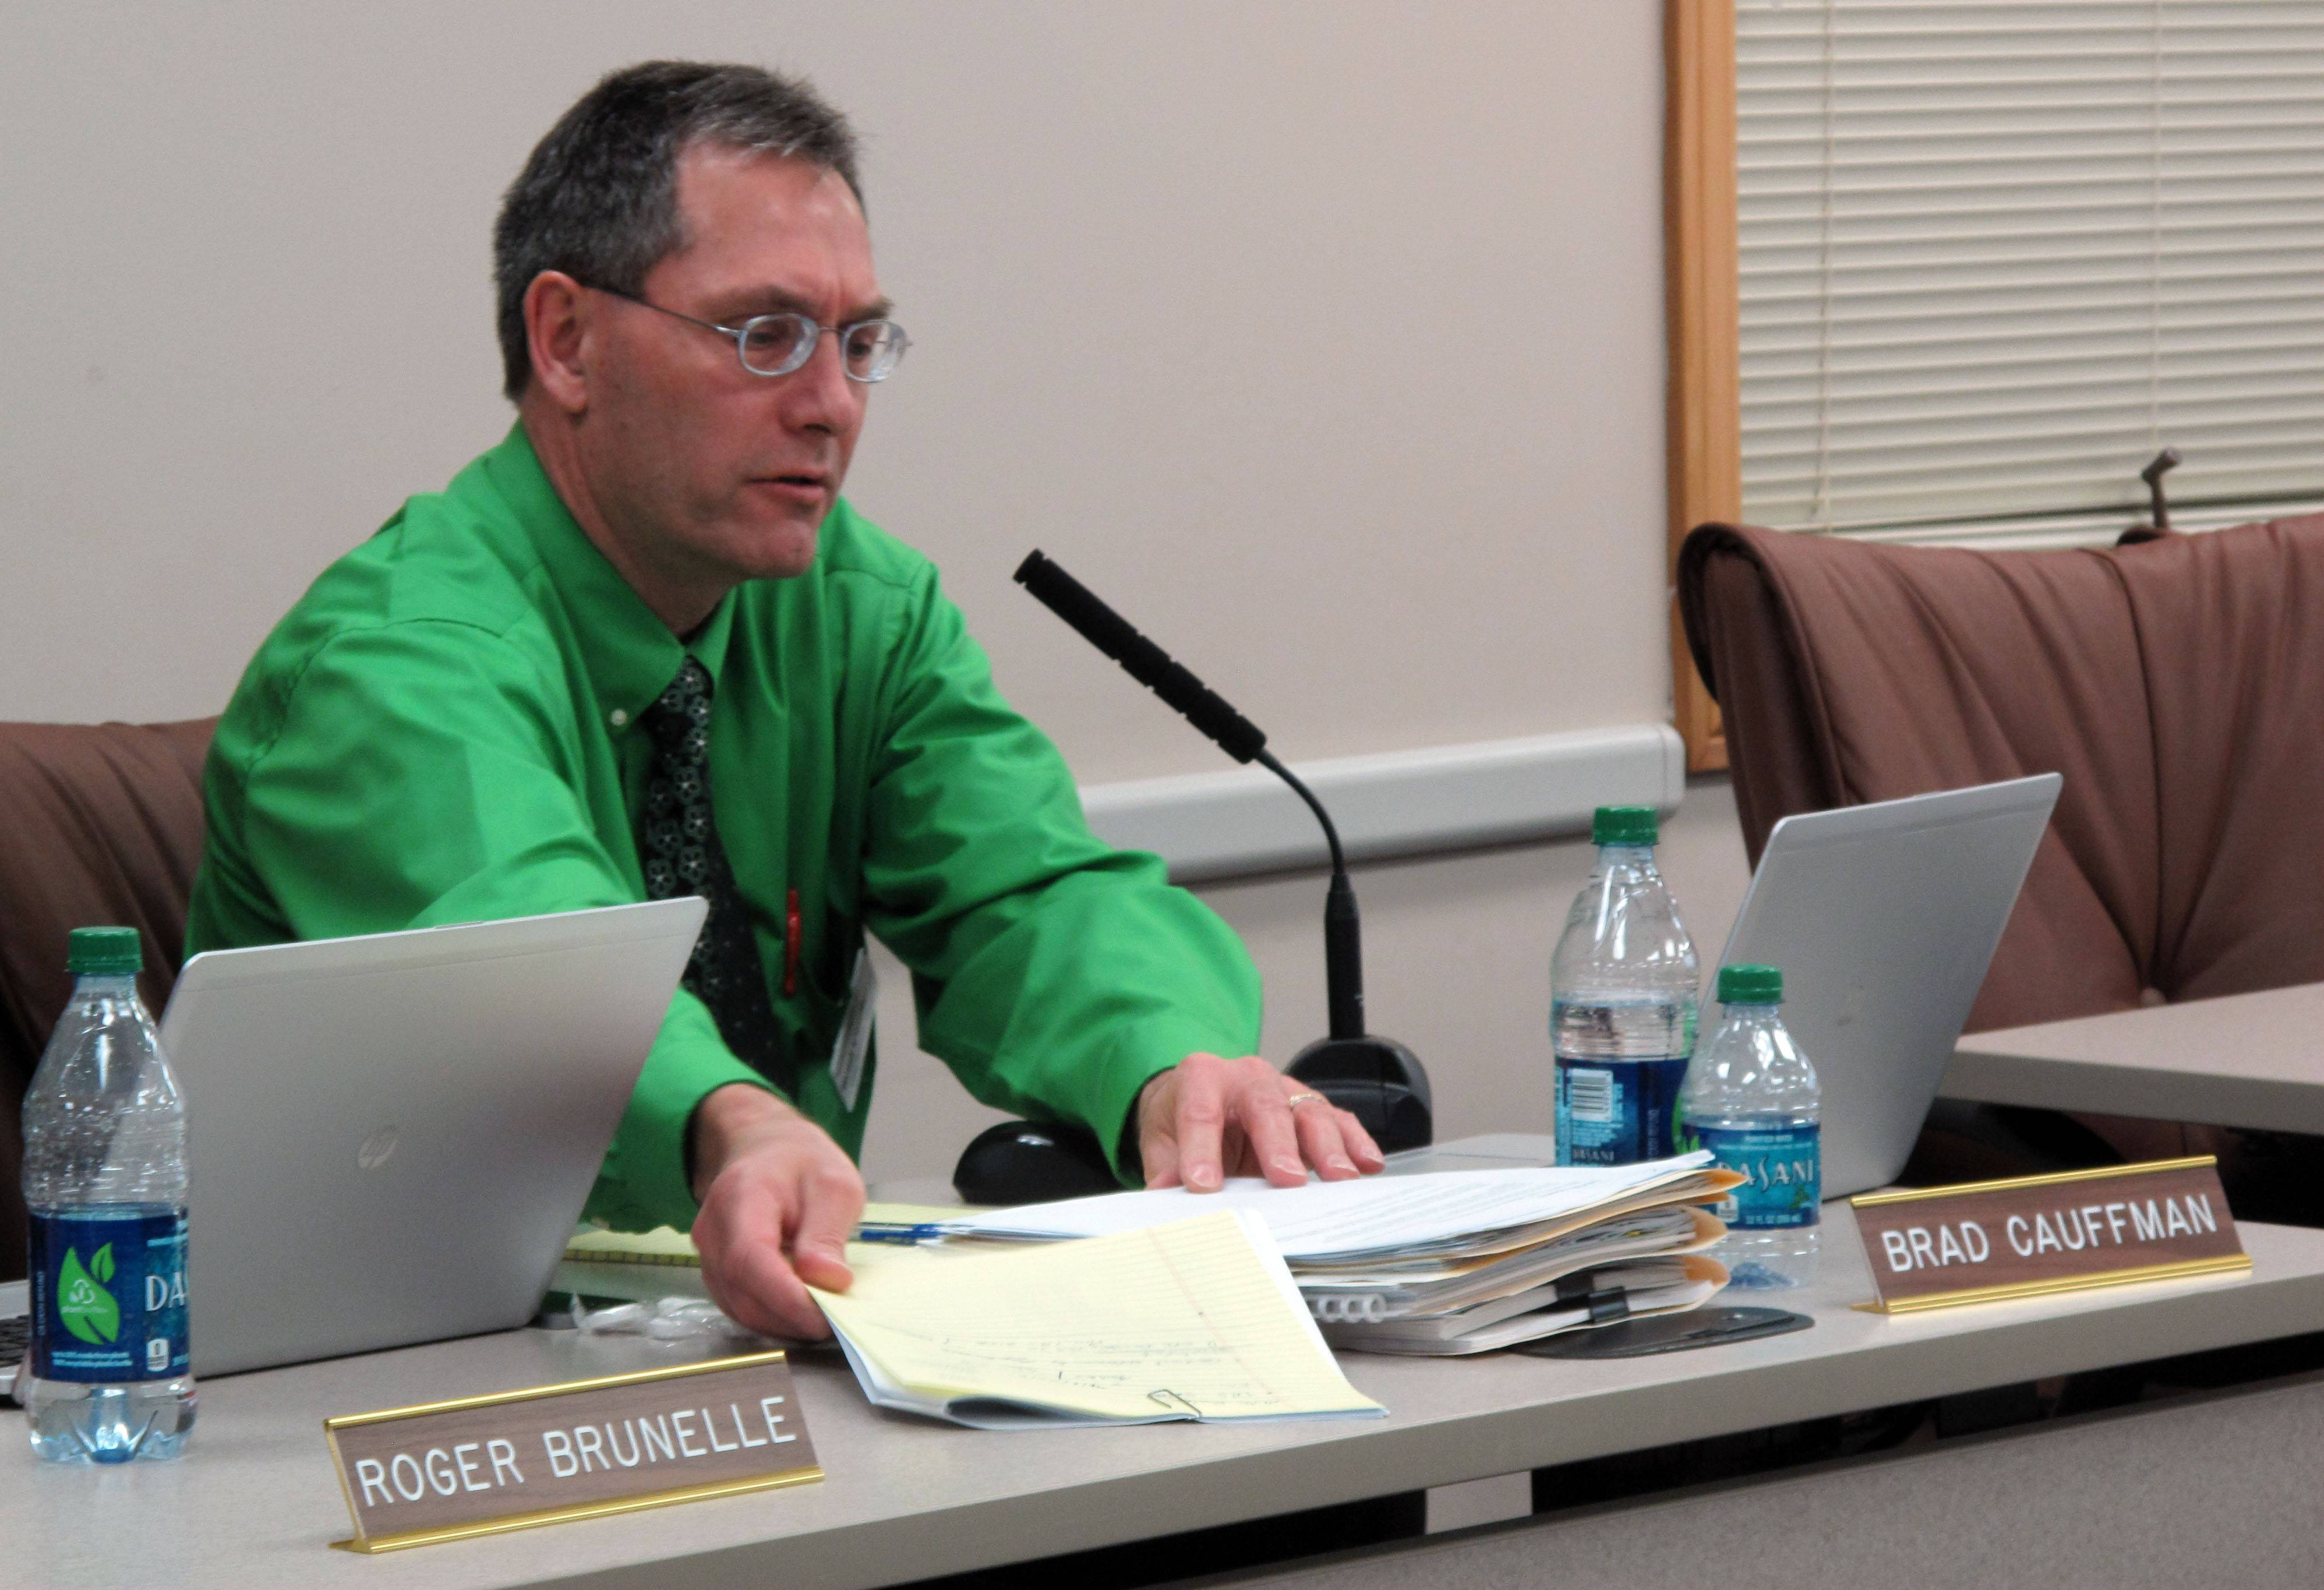 Brad Cauffman, chief financial officer for Naperville Unit District 203, reviews a proposal to keep $3 million in property tax revenue and use it to help repay a loan early. The school board decided Monday night to keep the taxes in an effort to save nearly $5 million in interest payments.